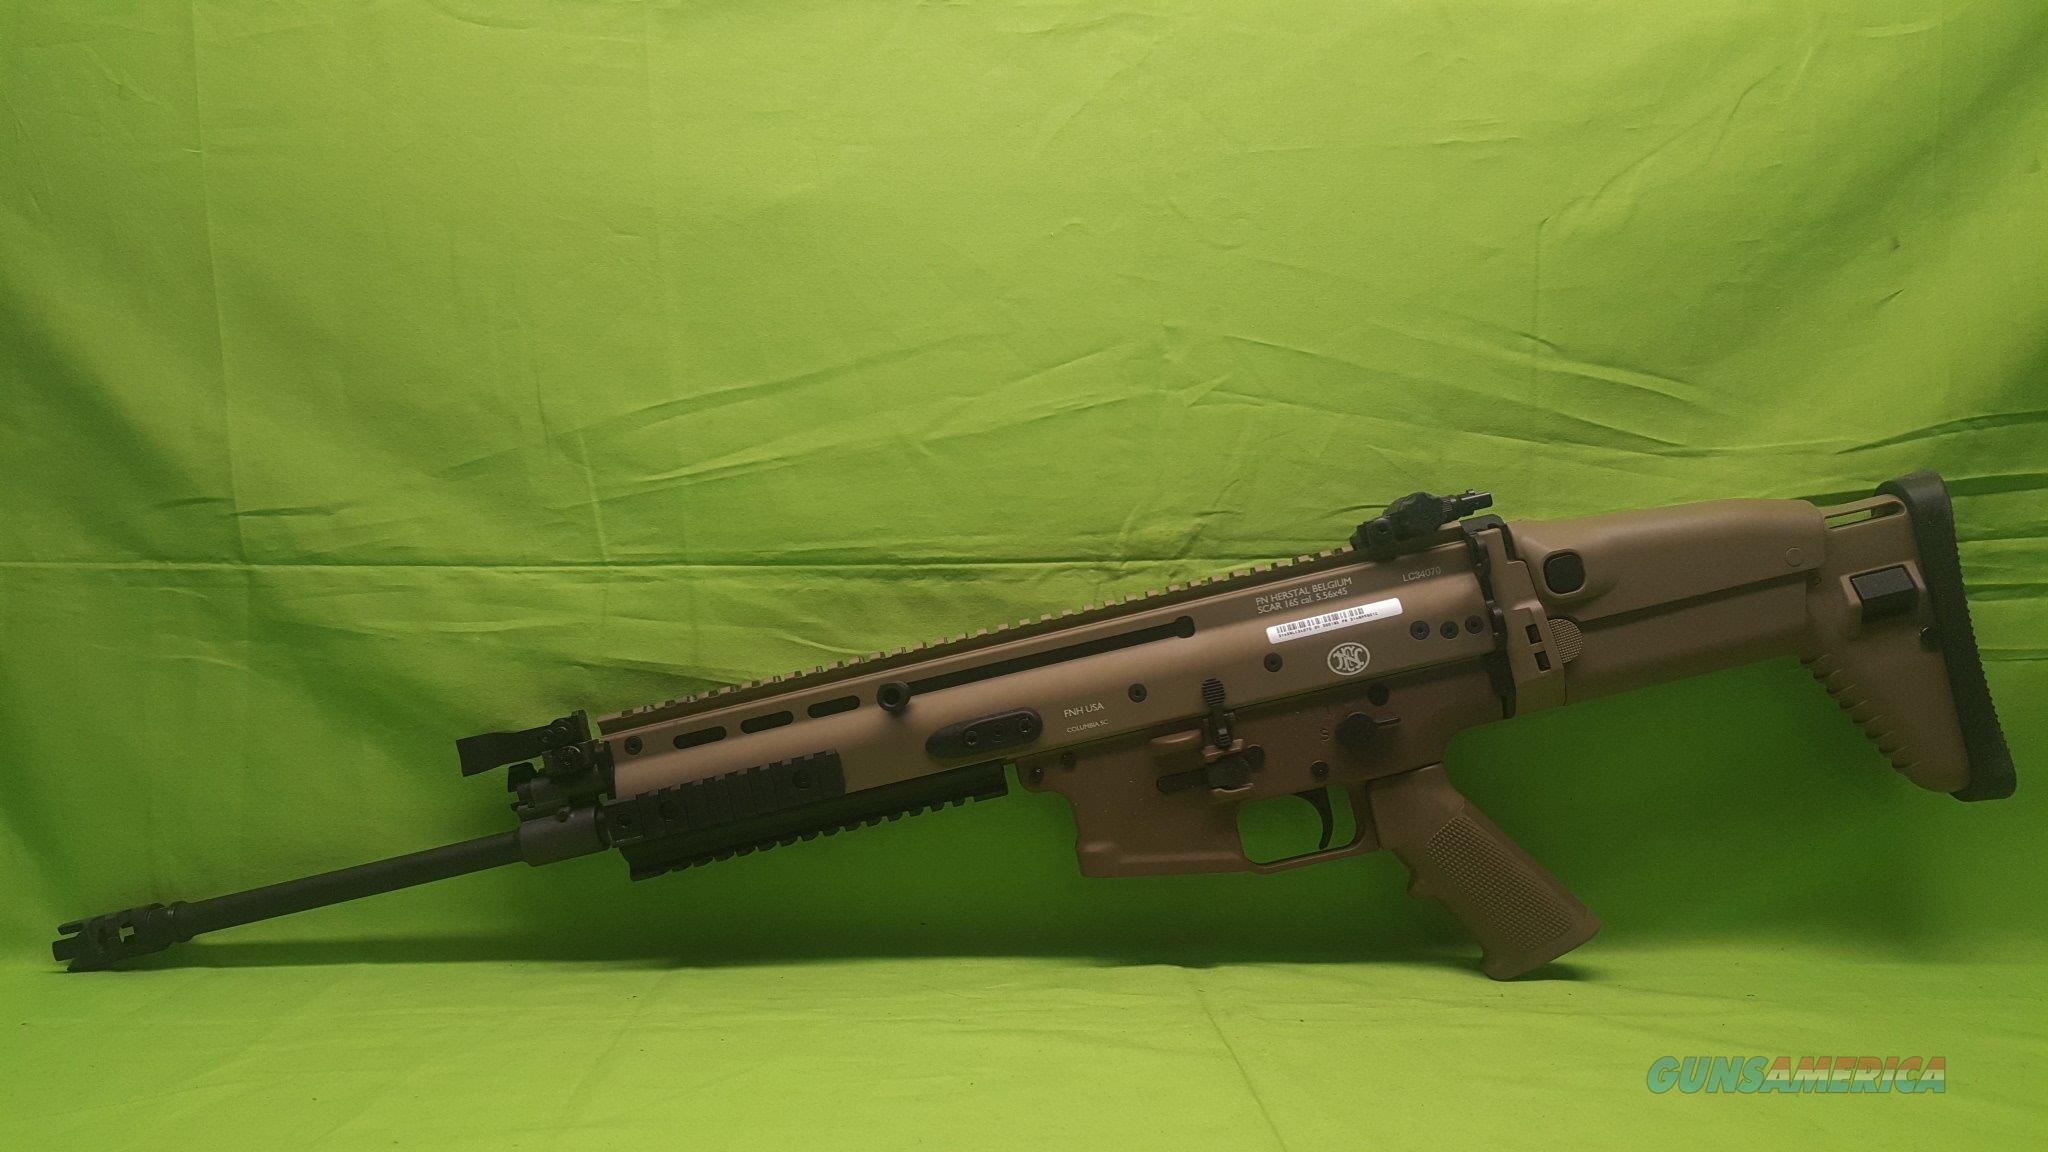 FNH FN SCAR 16S 16 S 5.56 NATO 223 REM FDE TAN  Guns > Rifles > FNH - Fabrique Nationale (FN) Rifles > Semi-auto > SCAR